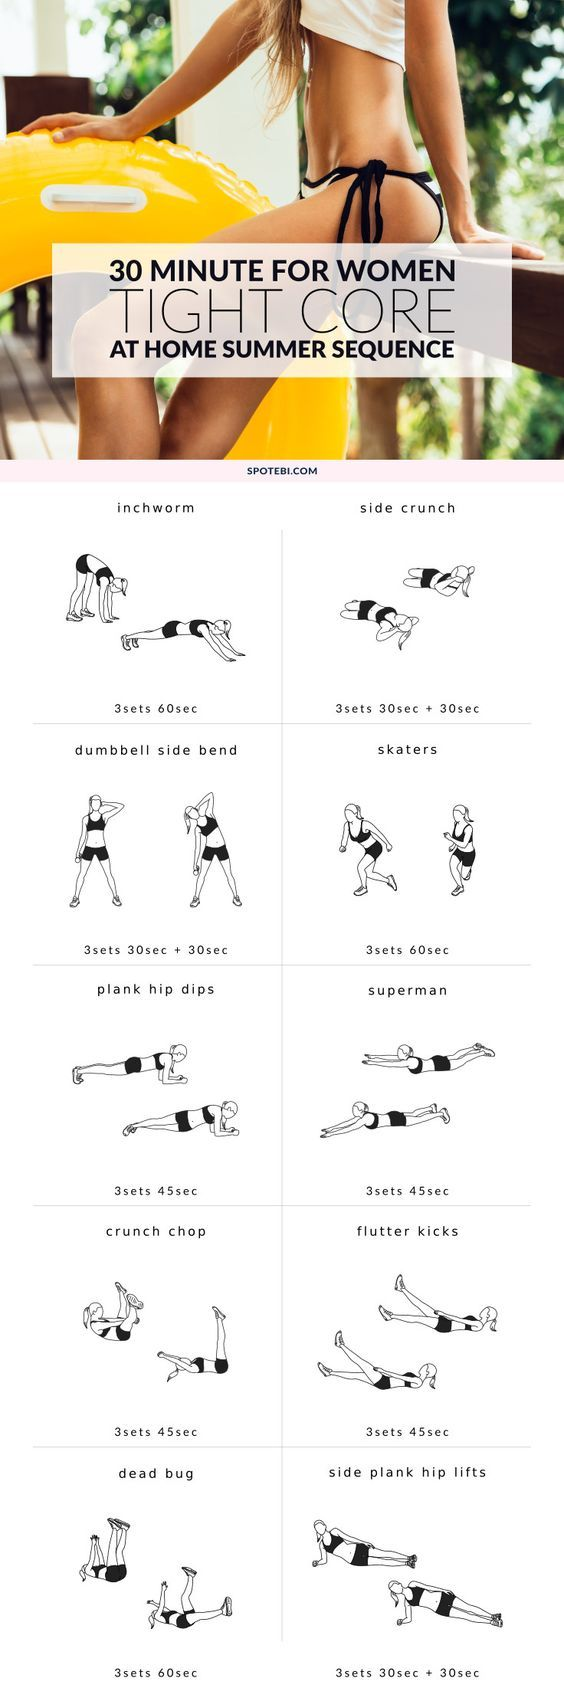 To get a toned belly and a small waist, women need to target all layers of muscles and hit the midsection from different angles. This Tight Core Summer Workout is designed to cinch your waist, strengthen your core and give you a tighter tummy! http://www.